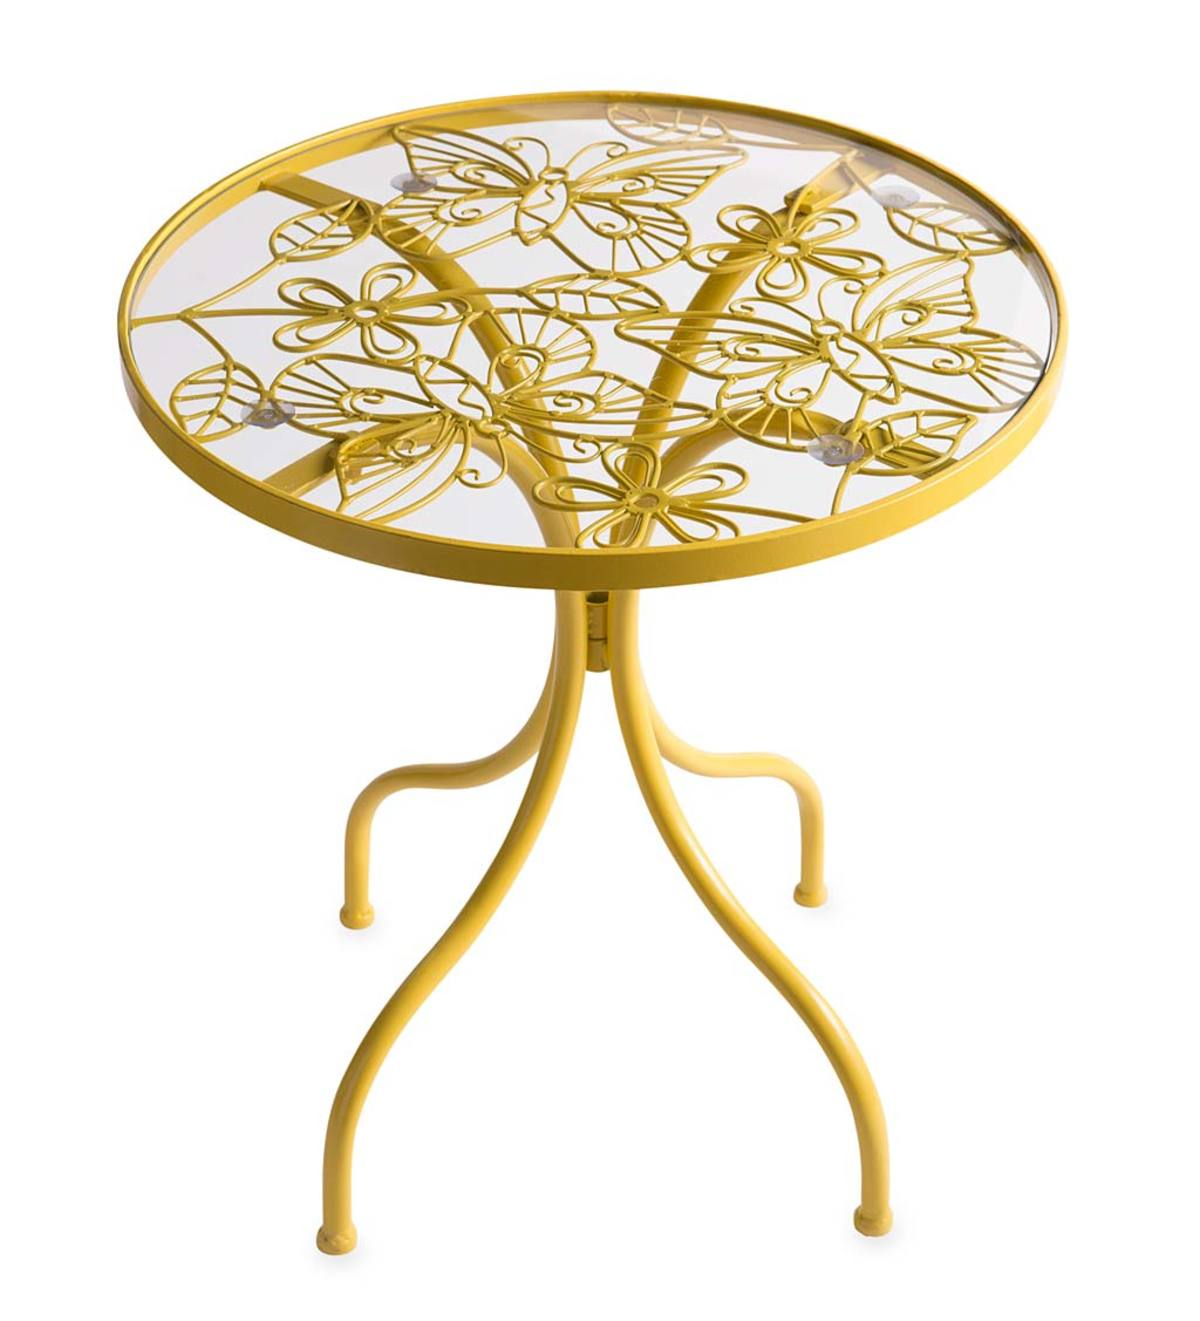 yellow butterfly metal side table plowhearth glass accent inch small gray decorative wine rack bedside lights marble top end tables outside chairs clearance deck furniture red